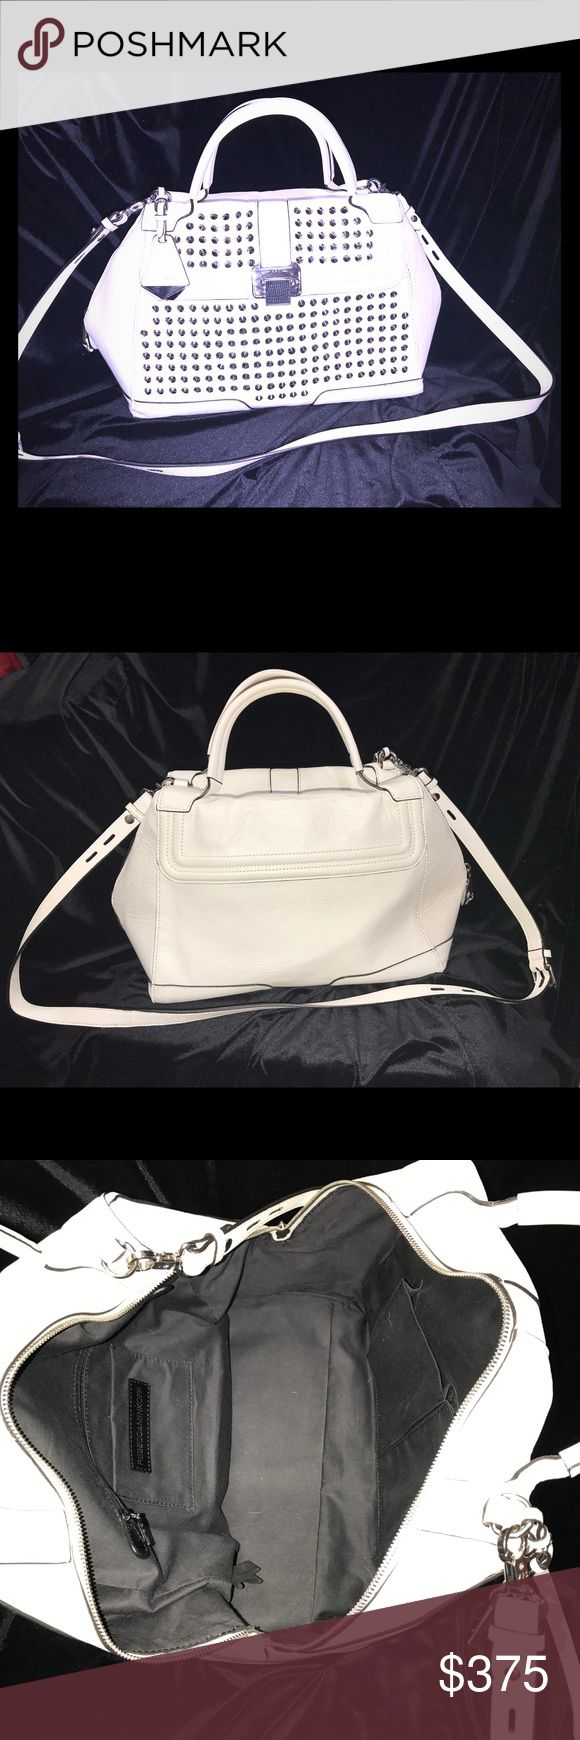 Rebecca Minkoff Studded Elle Bag in White Beautiful Rebecca Minkoff White Studded Elle Satchel.  New, without tags, never been used, white leather with silver studs.  Pristine condition!  Stored in dust bag. Rebecca Minkoff Bags Satchels